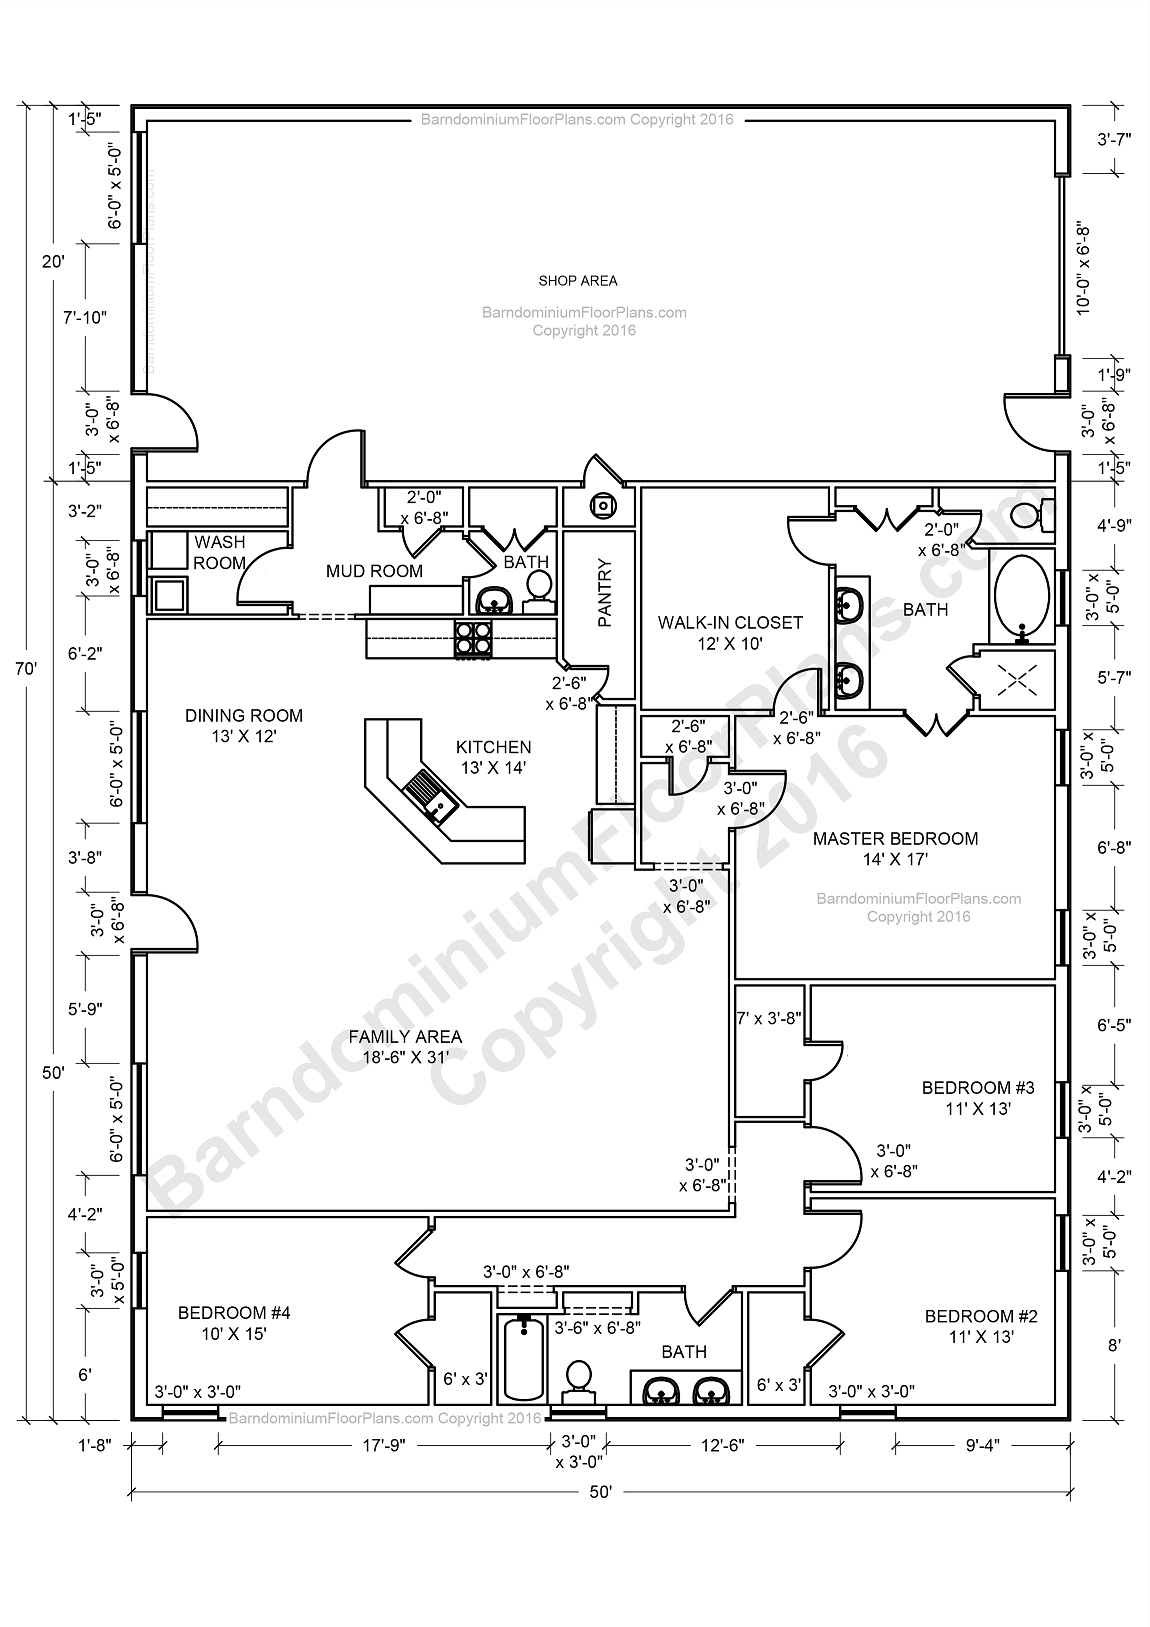 Barndominium floor plans barndominium floor plans 1 800 Barn house plans two story